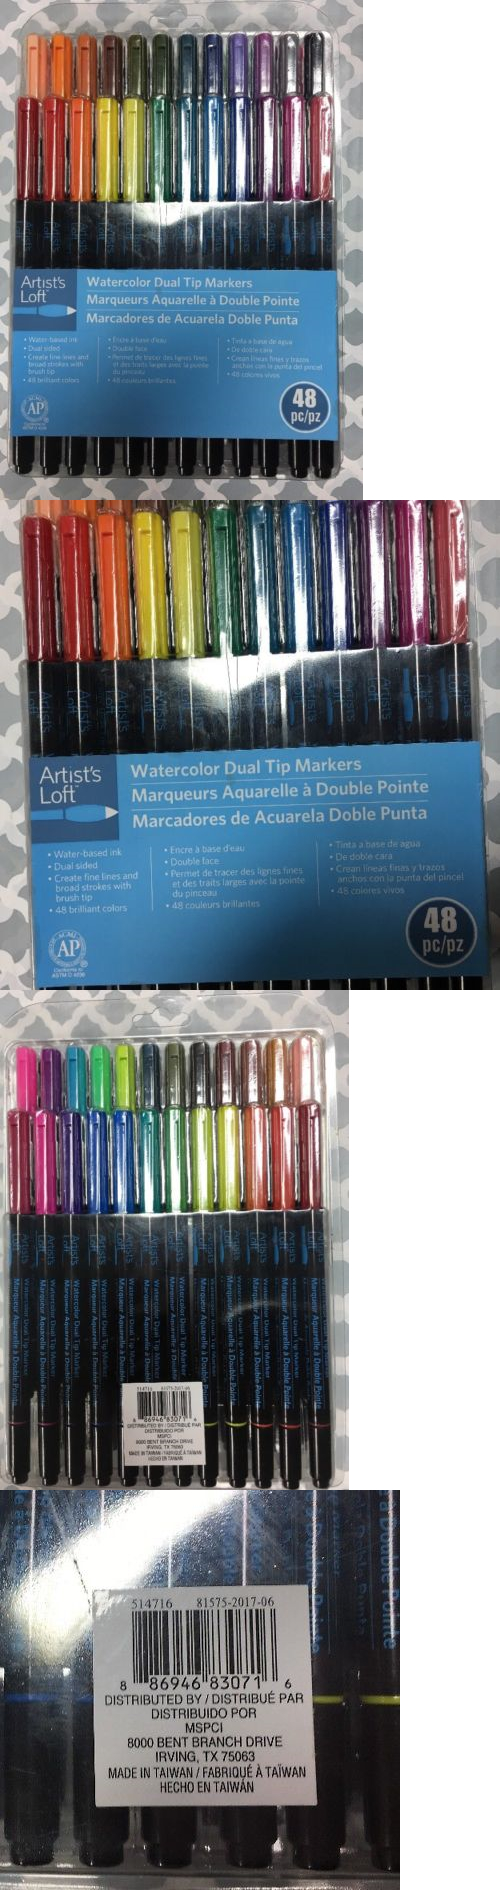 Craft Markers And Pens 11790 Artist S Loft Watercolor Dual Tip